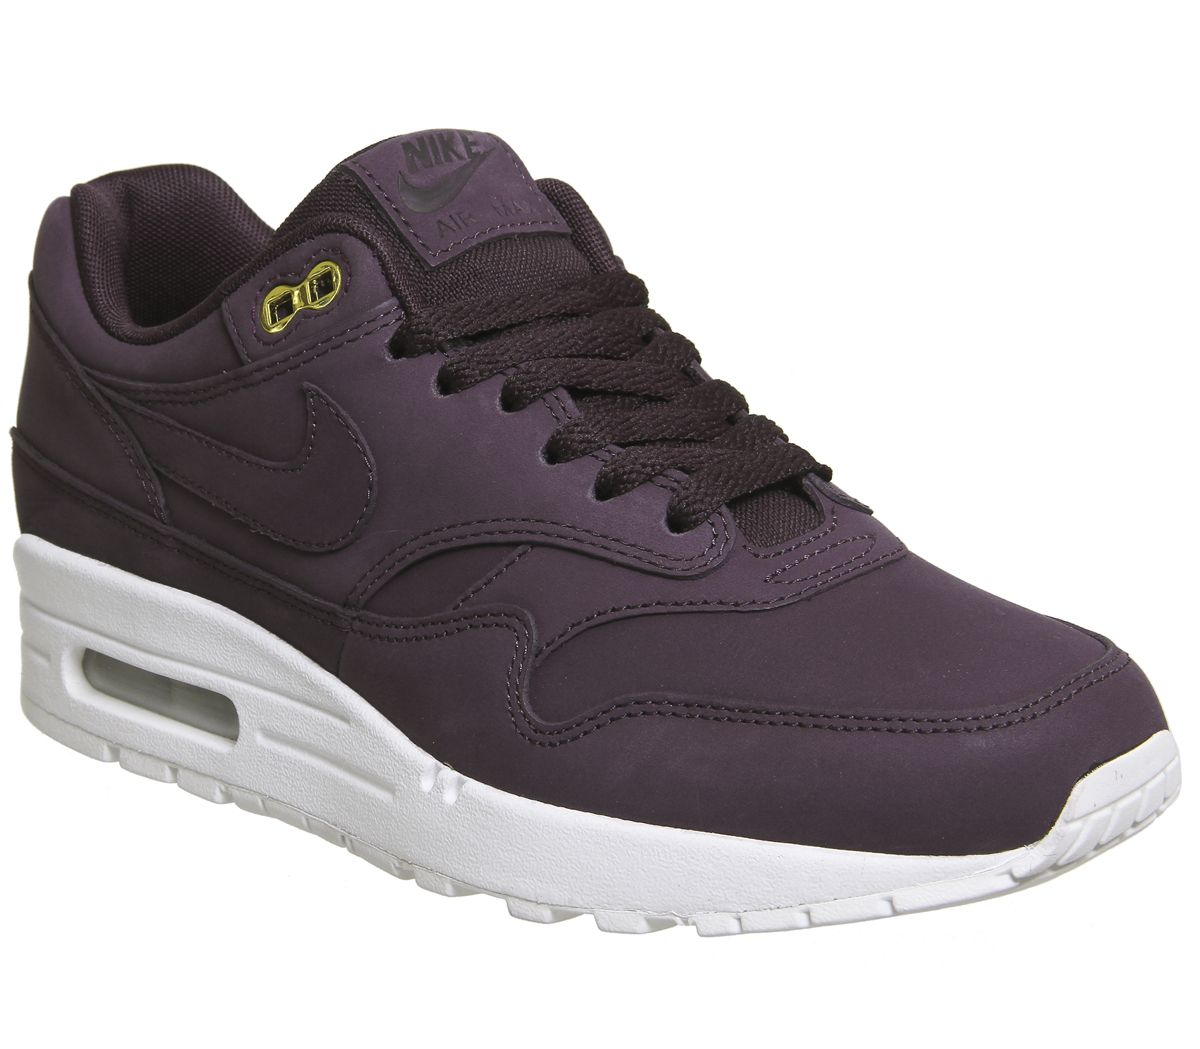 huge discount 735ef 460ef Nike Air Max 1 Trainers Port Wine White - Hers trainers